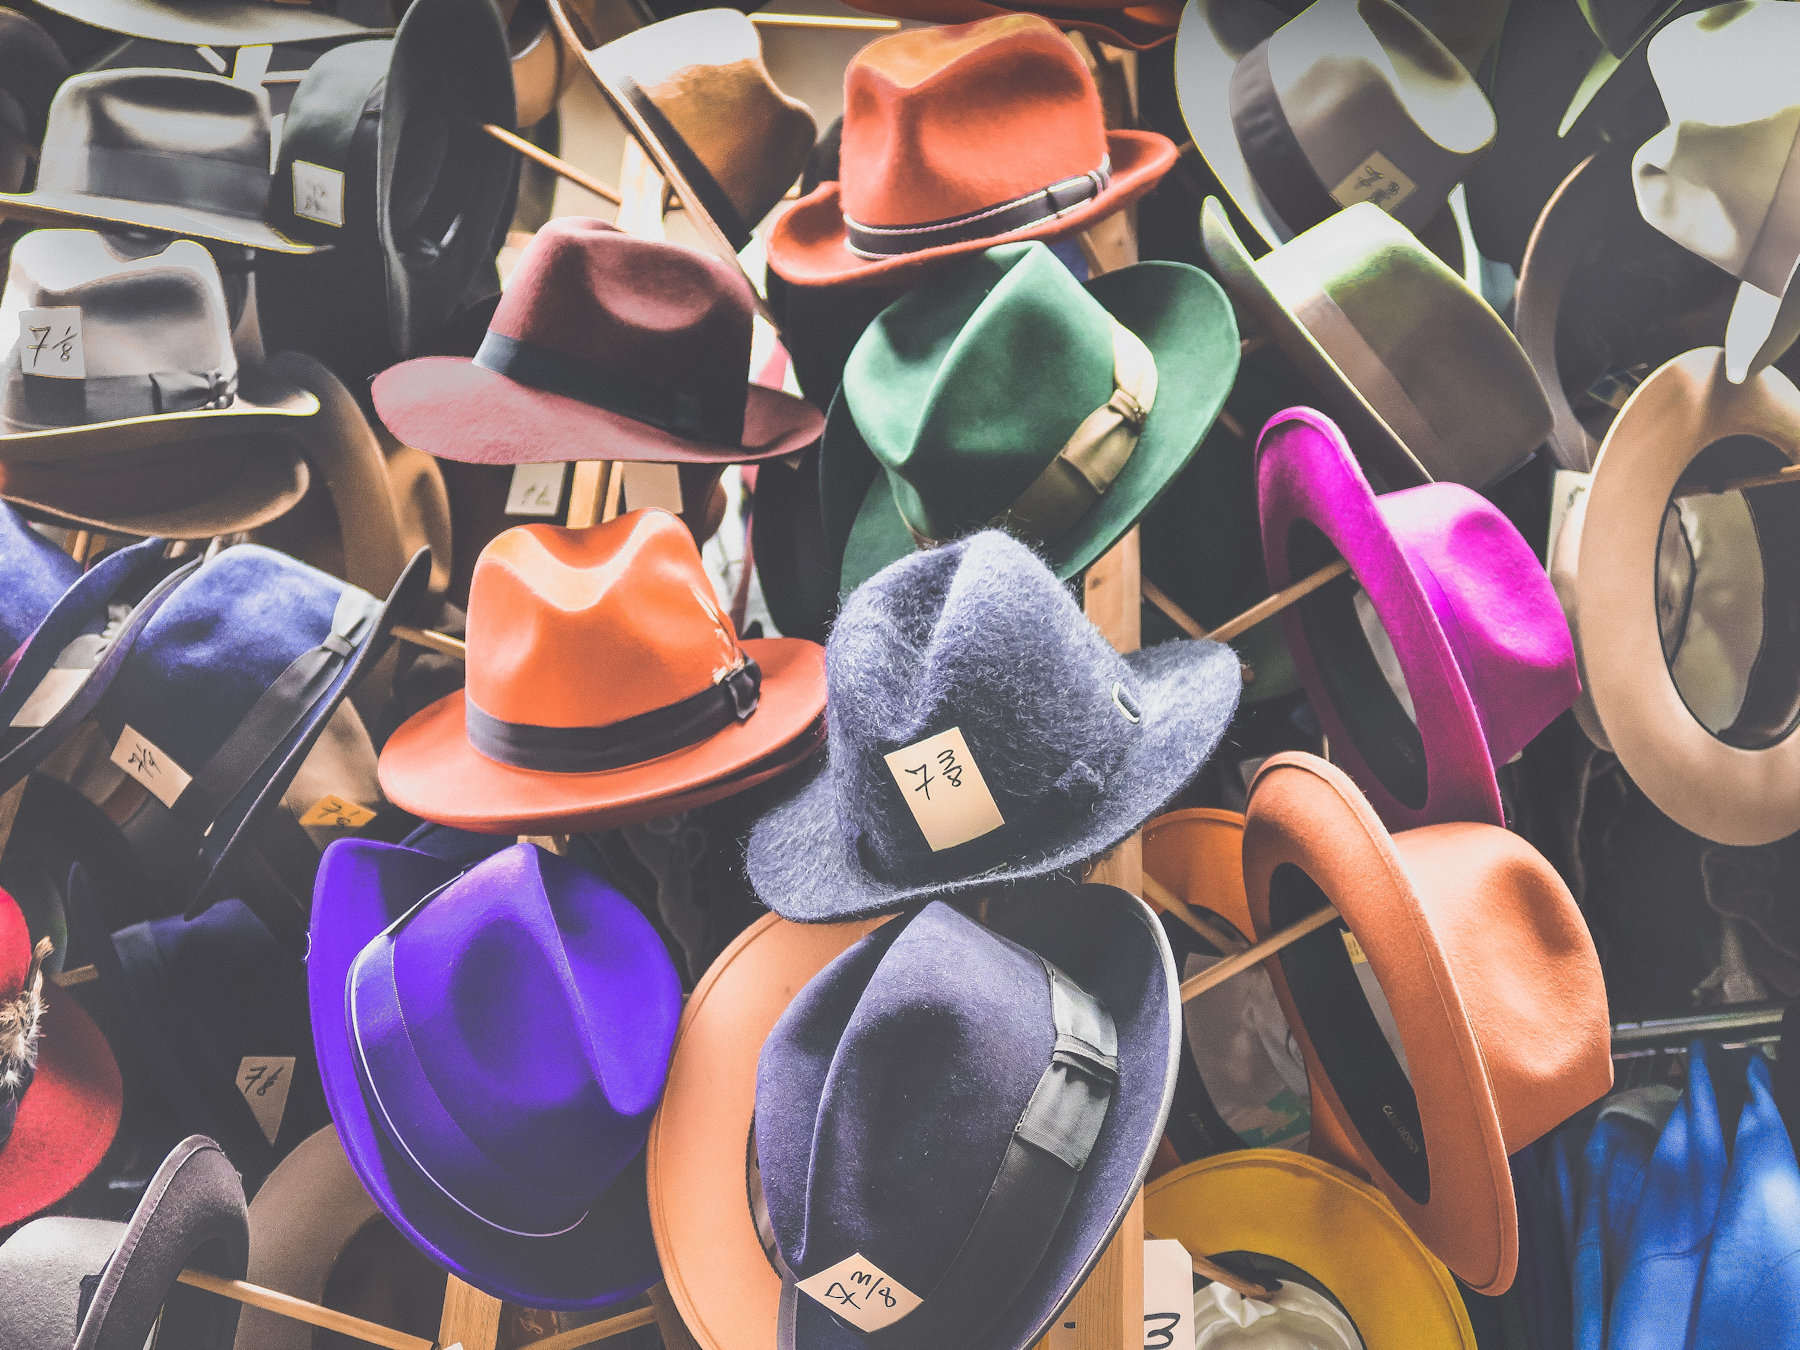 The Many HR Hats Often Worn by Early Stage Startup Founders